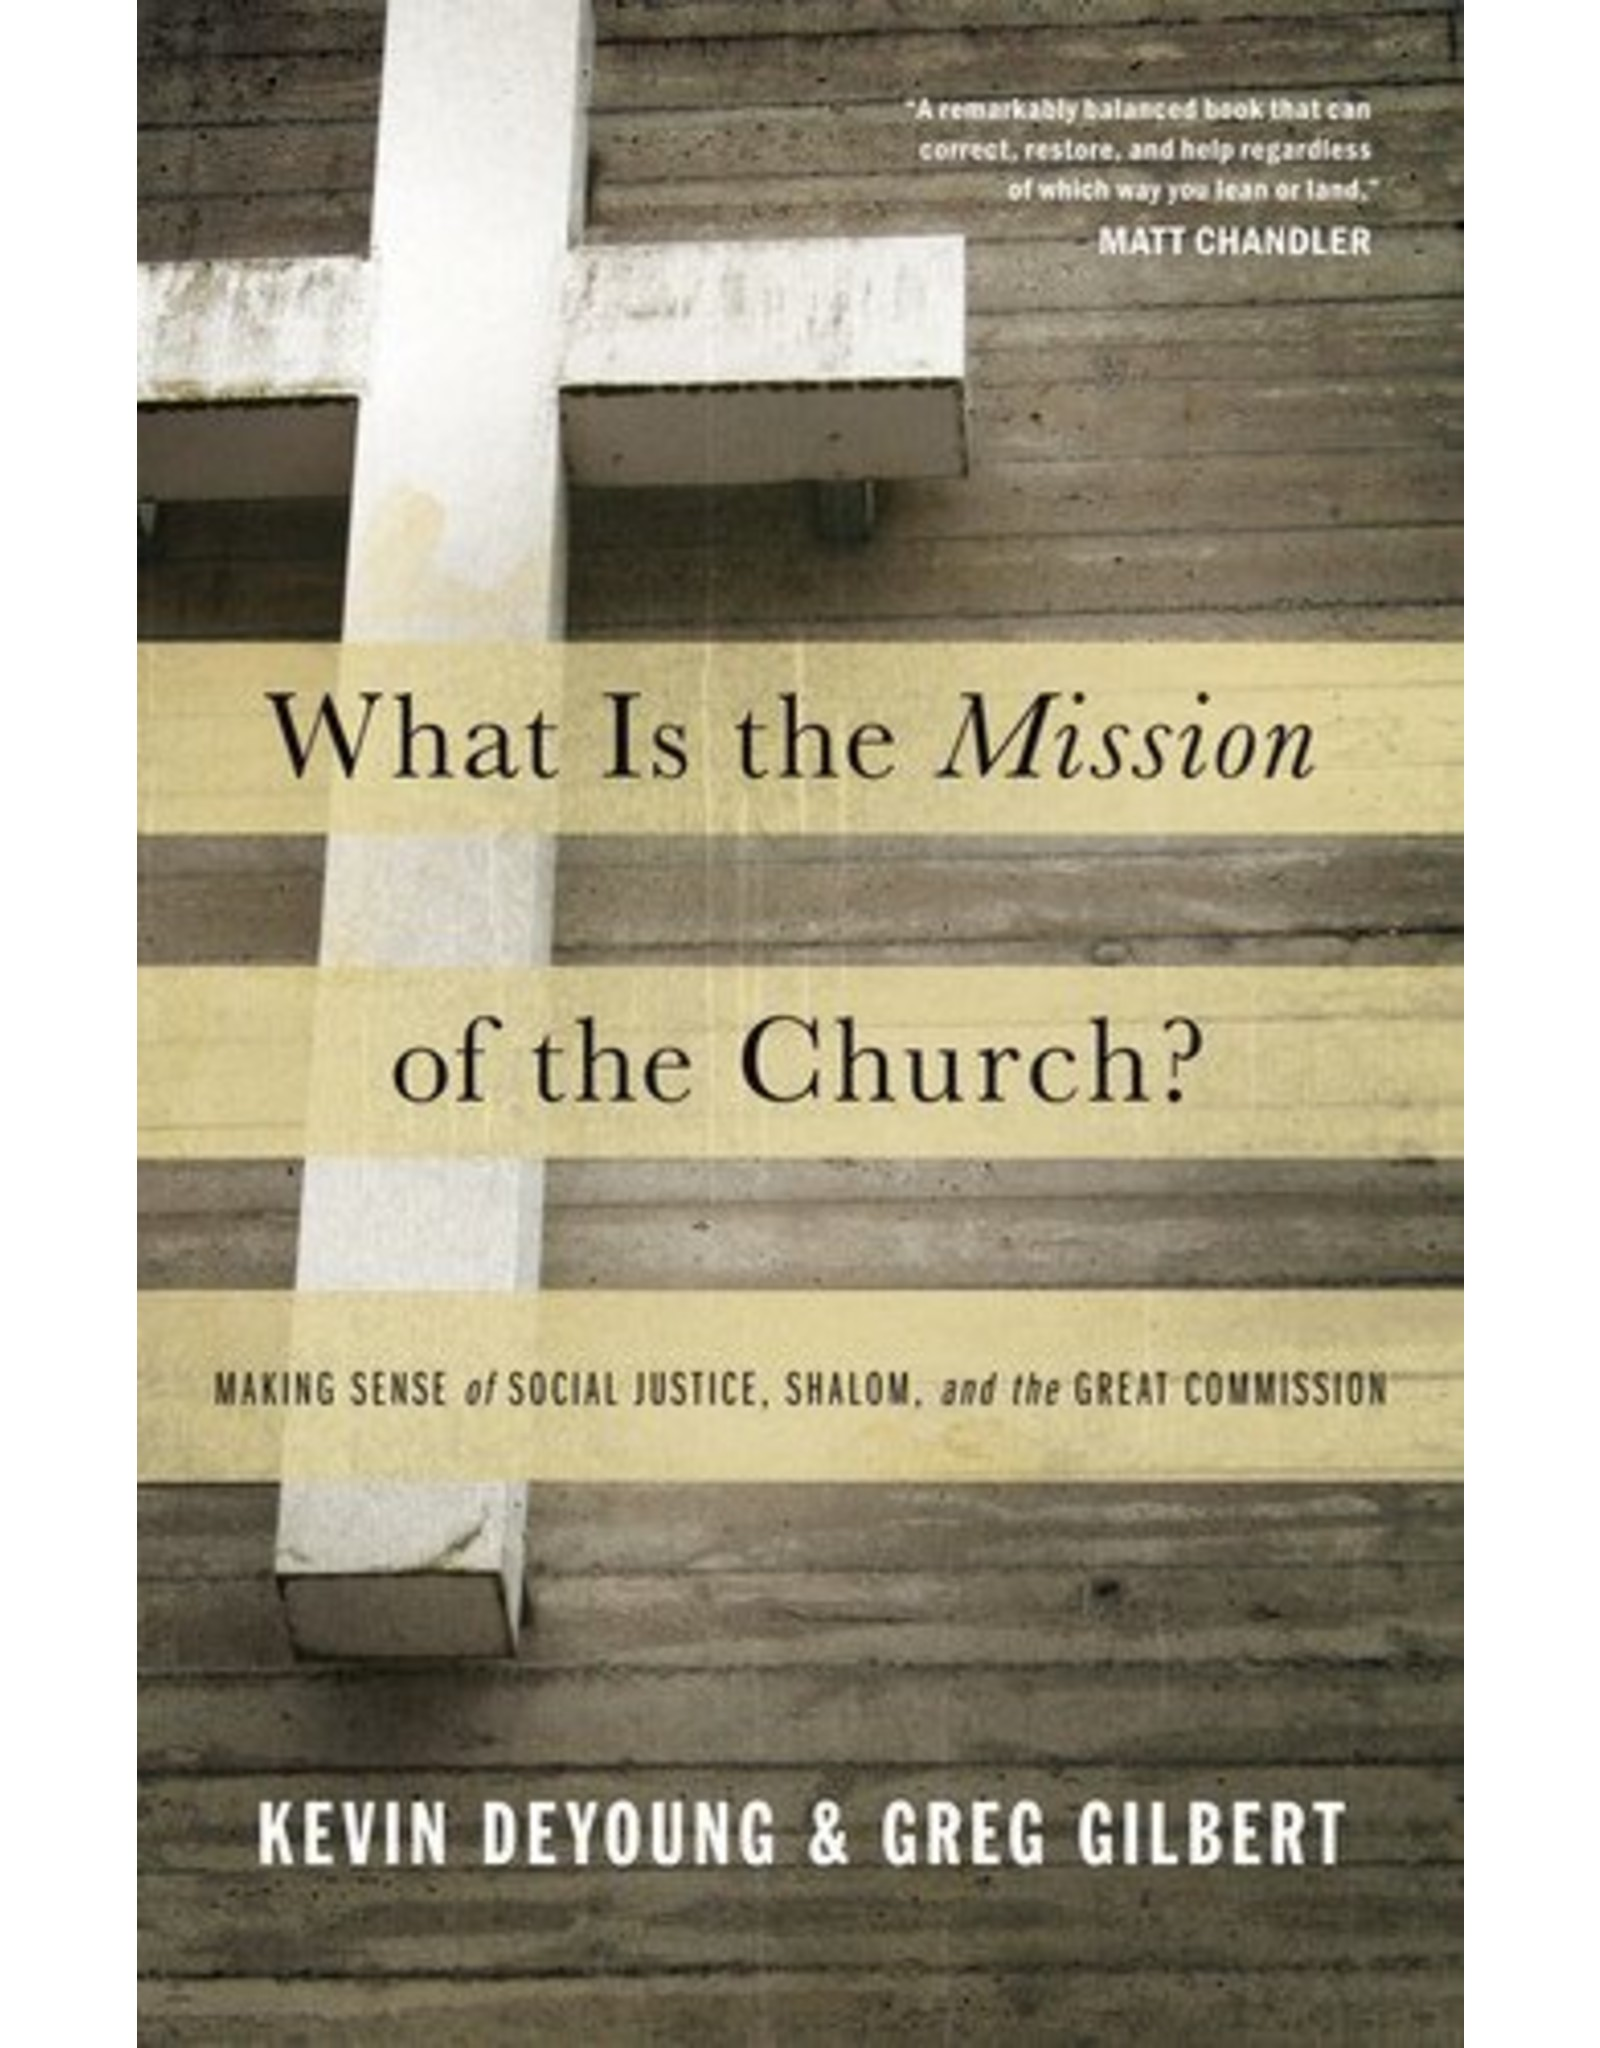 Crossway / Good News What Is the Mission of the Church?